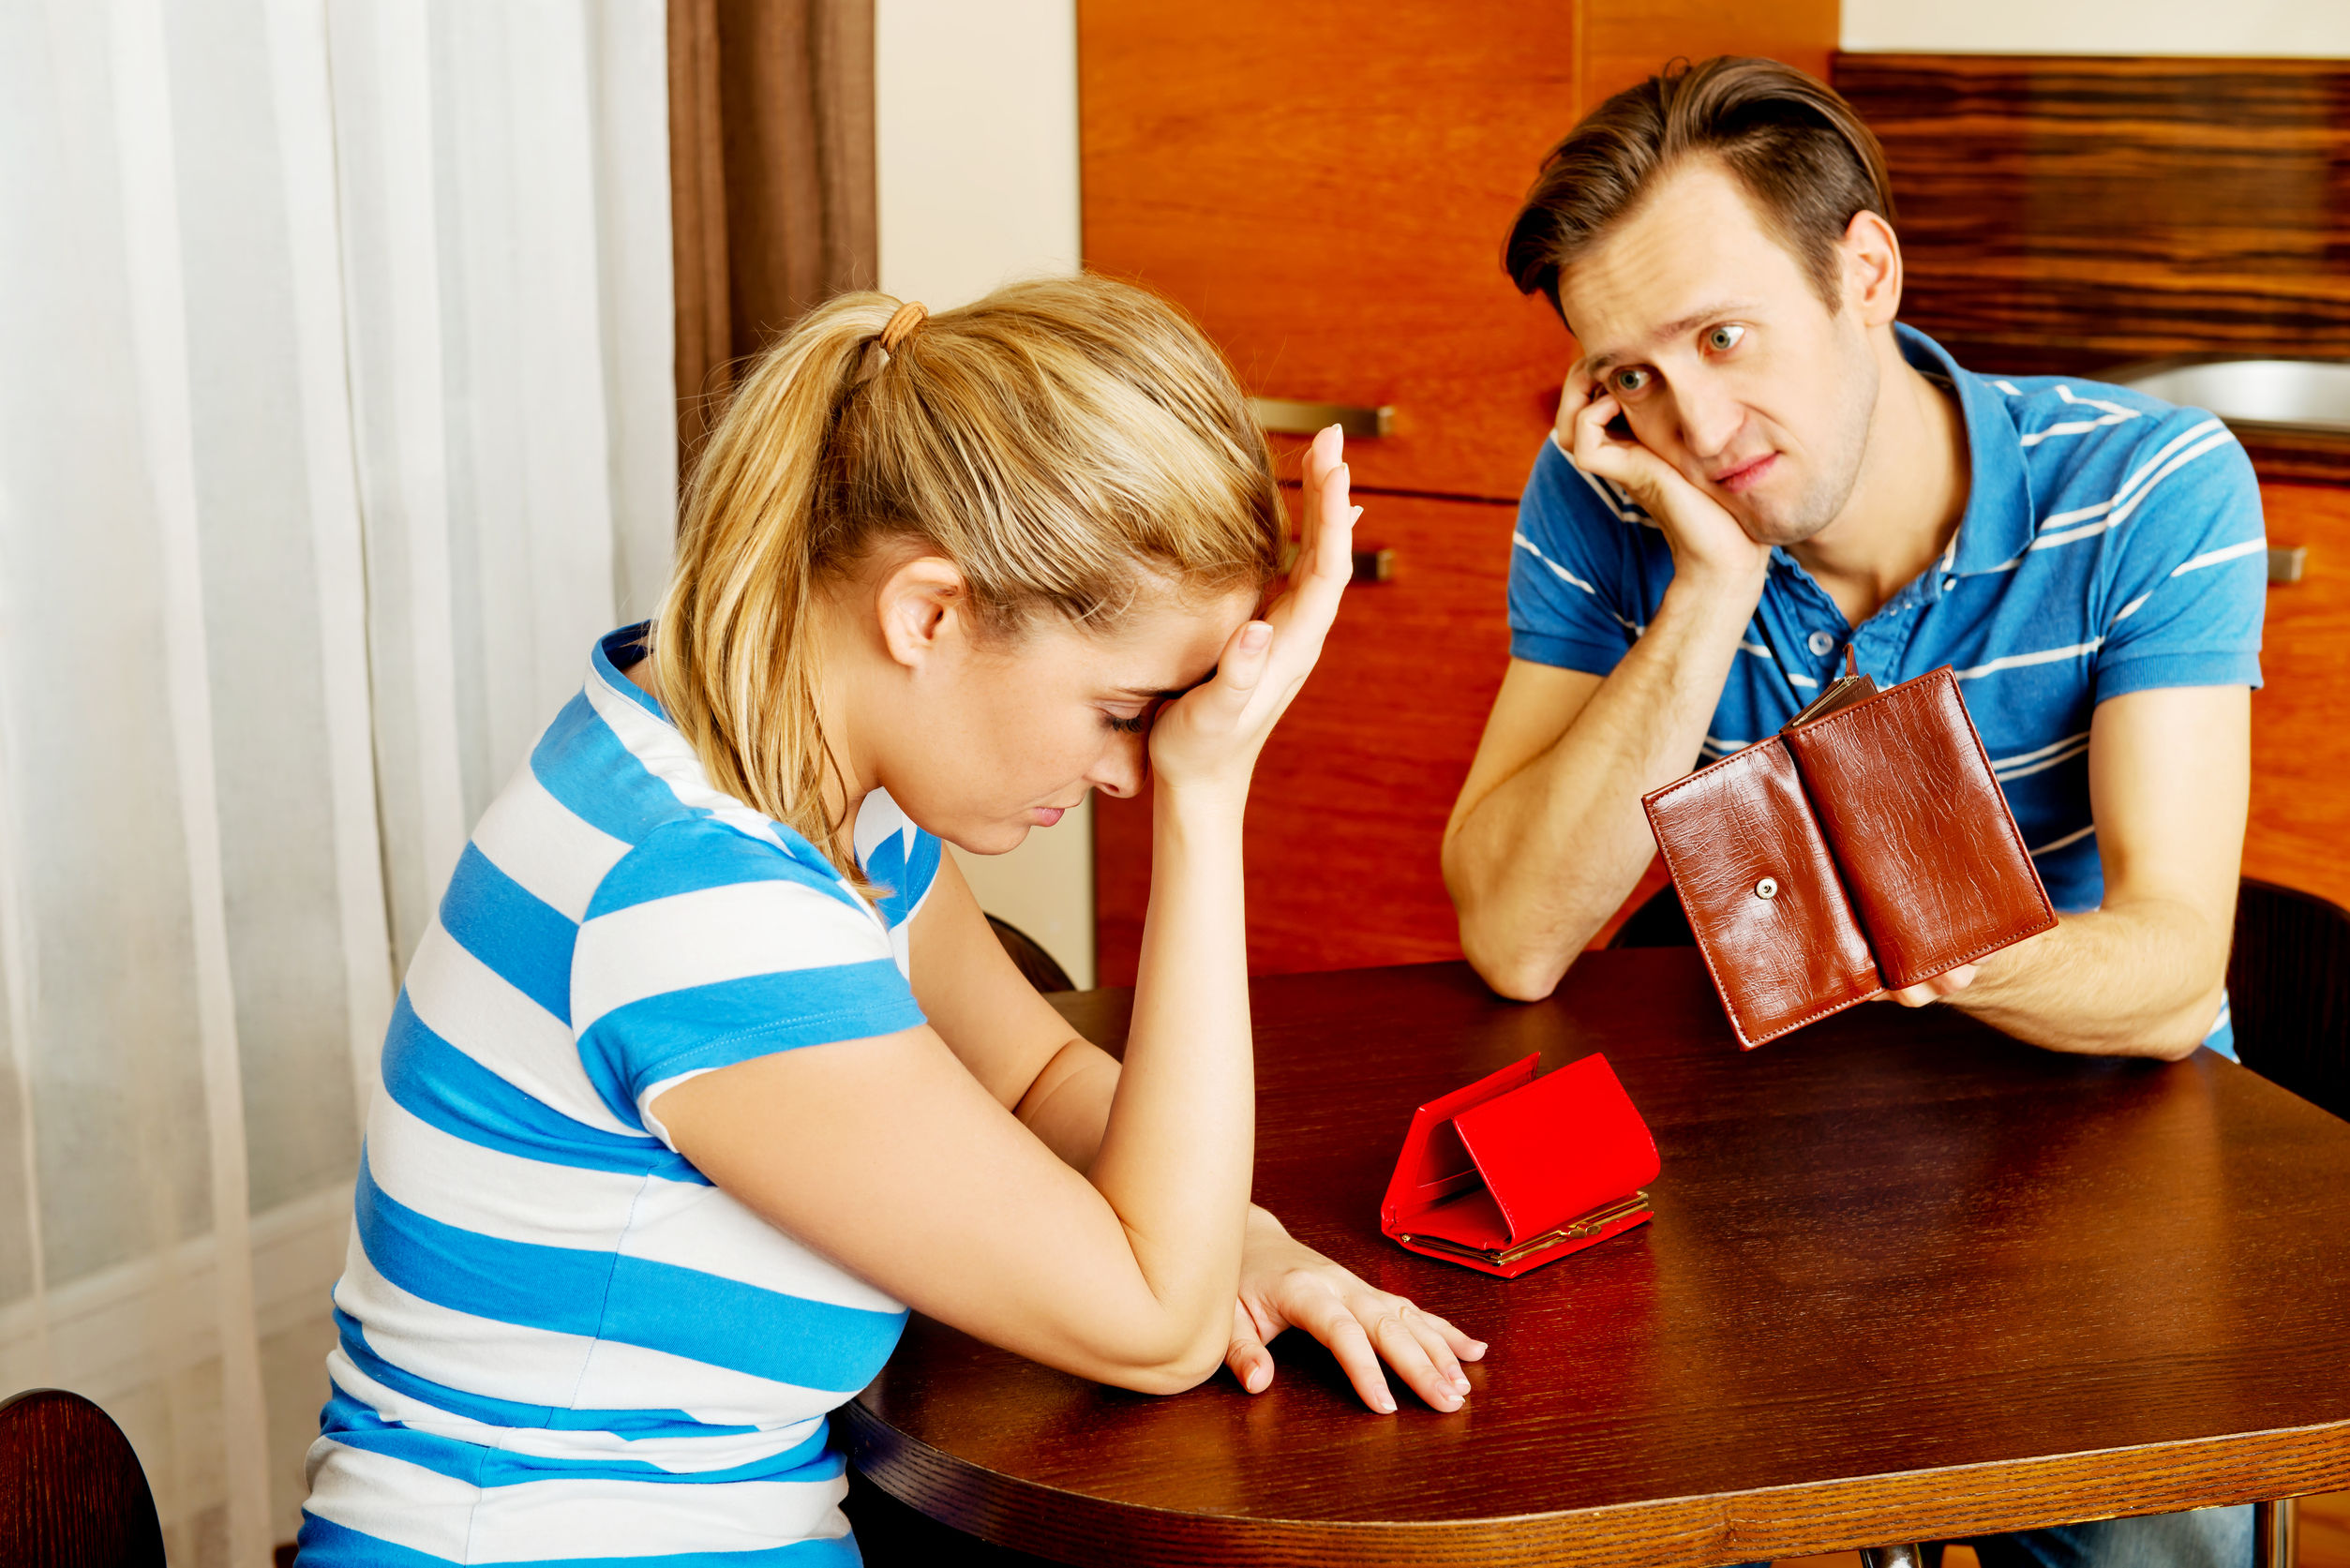 Buyers Remorse Car >> Consumer Rights Buyer S Remorse After Purchasing A Car